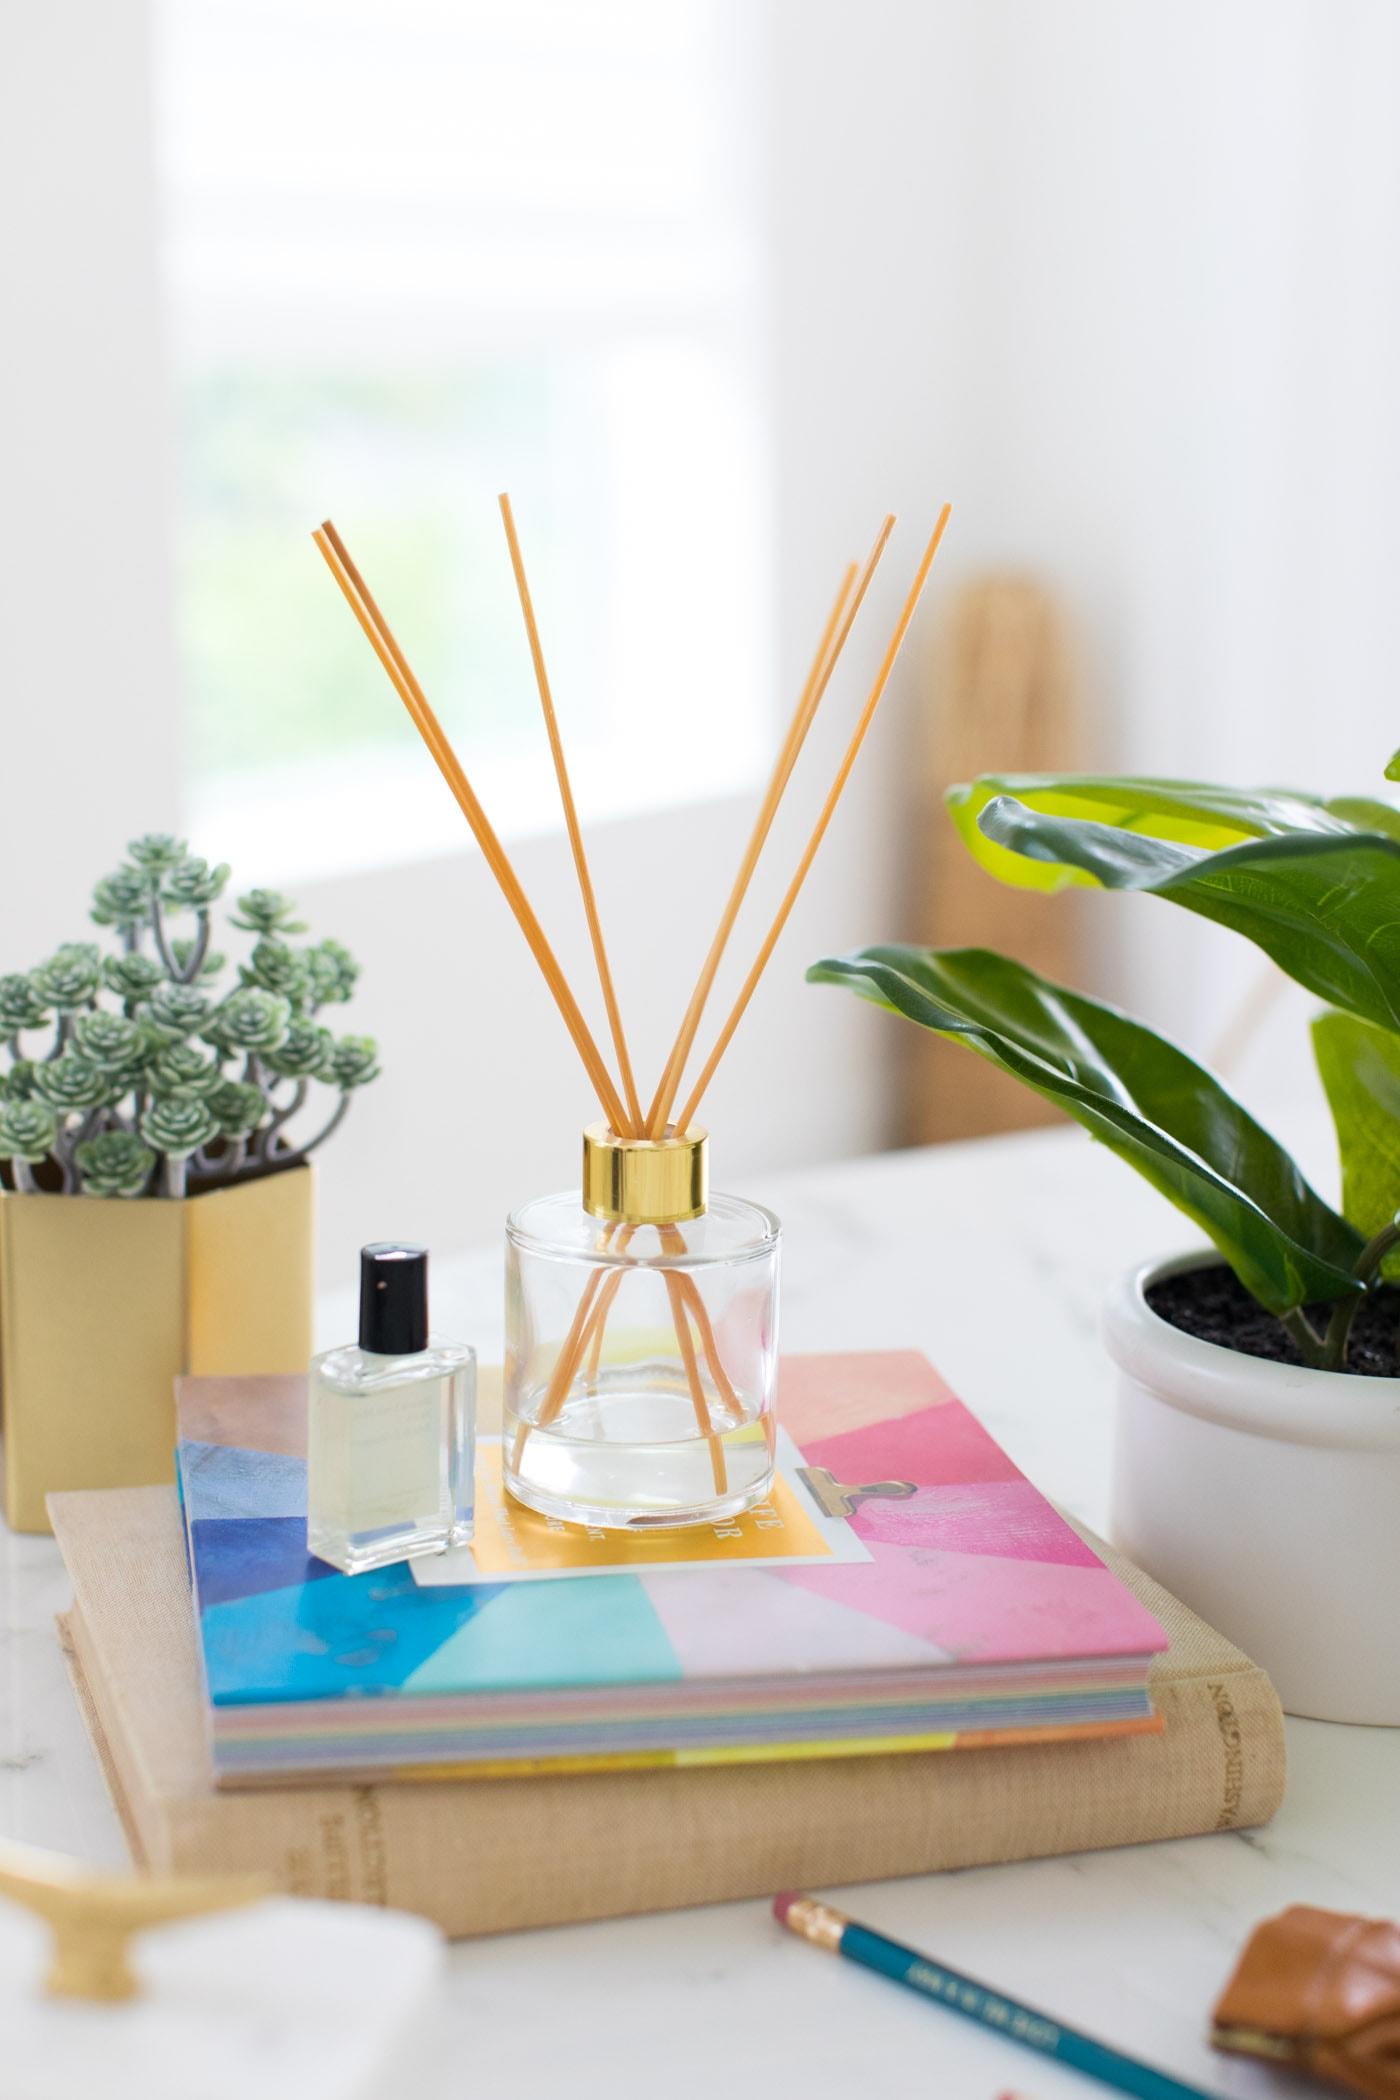 photo of a DIY reed diffuser by top Houston lifestyle blogger Ashley Rose of Sugar & Cloth